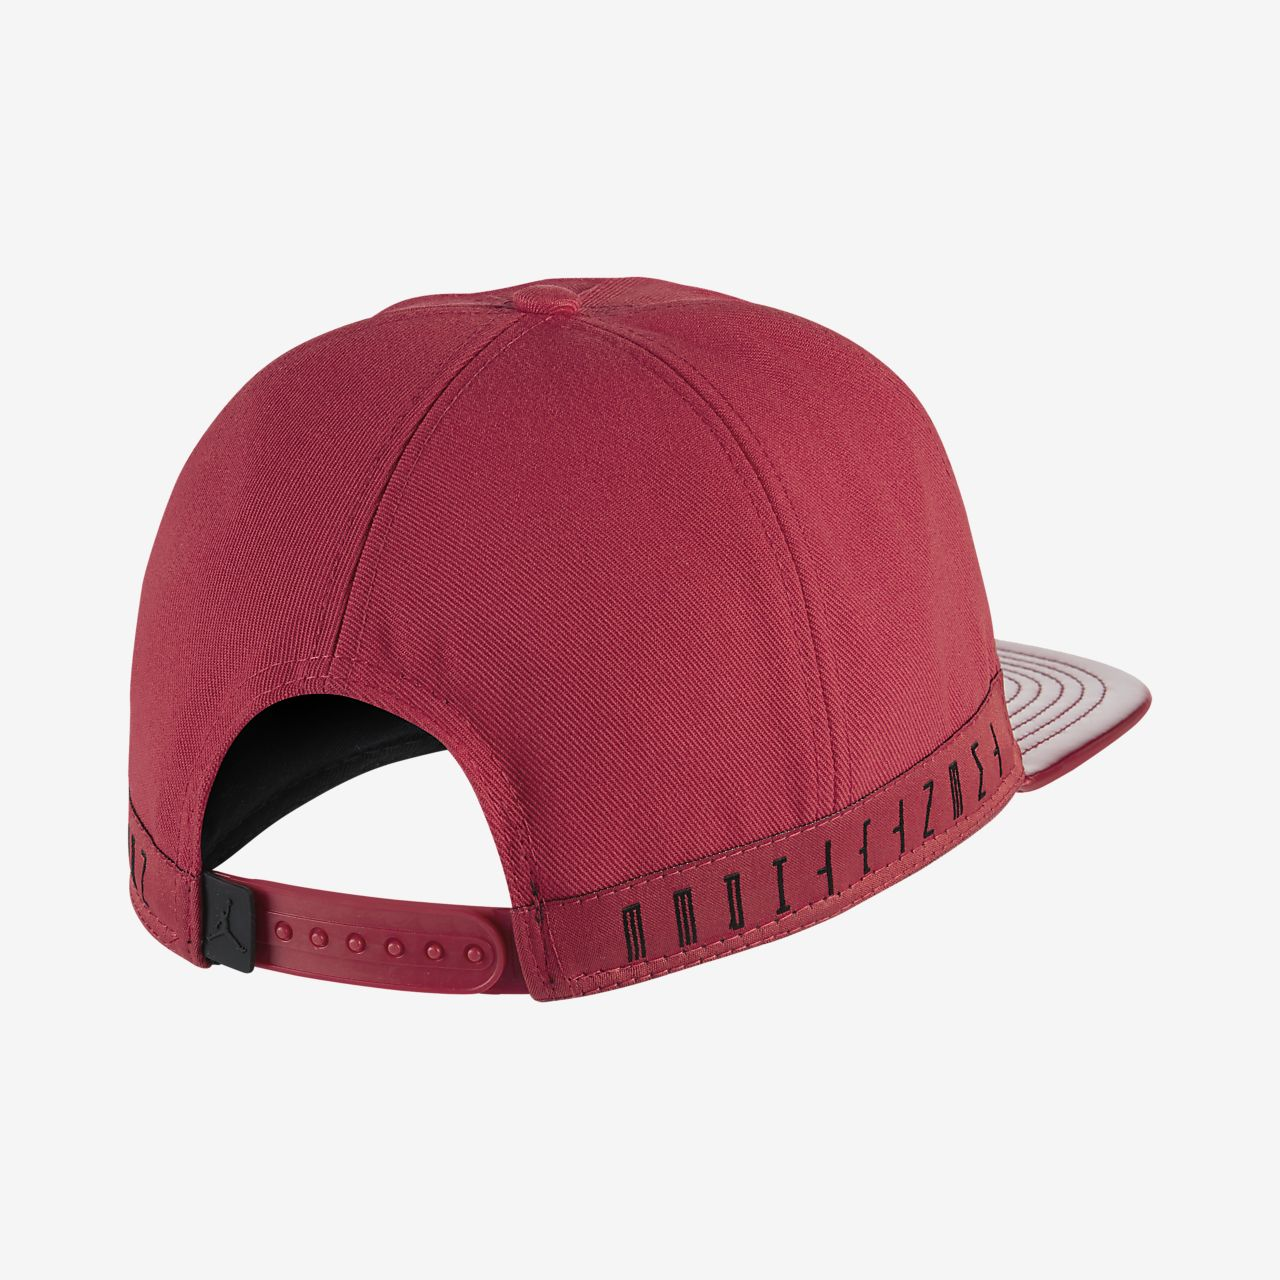 4a273117 Low Resolution Jordan 11 Snapback Adjustable Hat Jordan 11 Snapback  Adjustable Hat